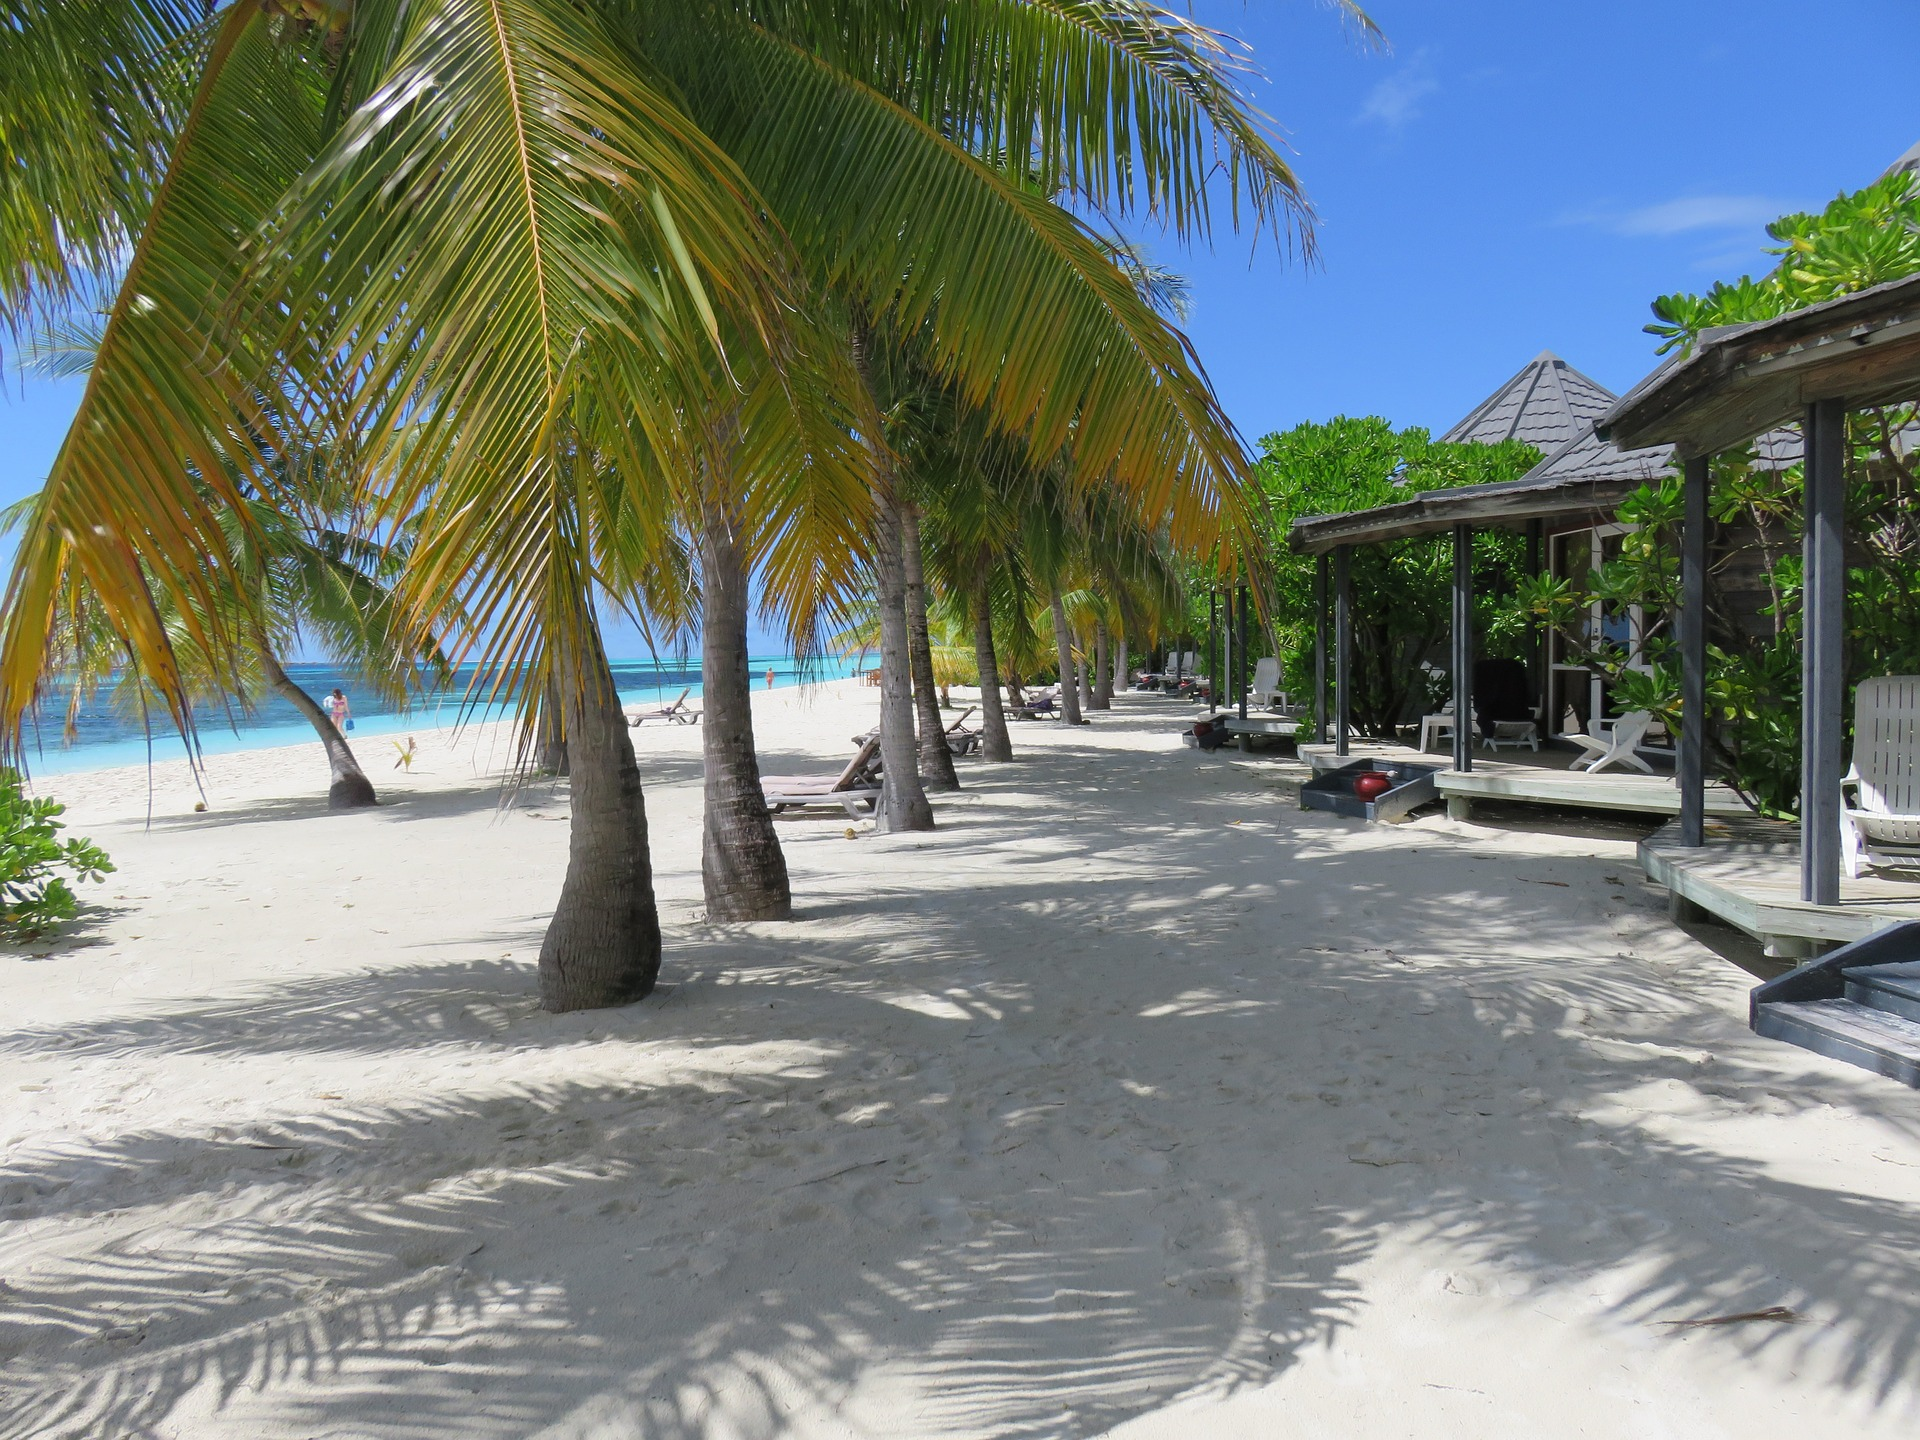 maldives-1095116_1920.jpg